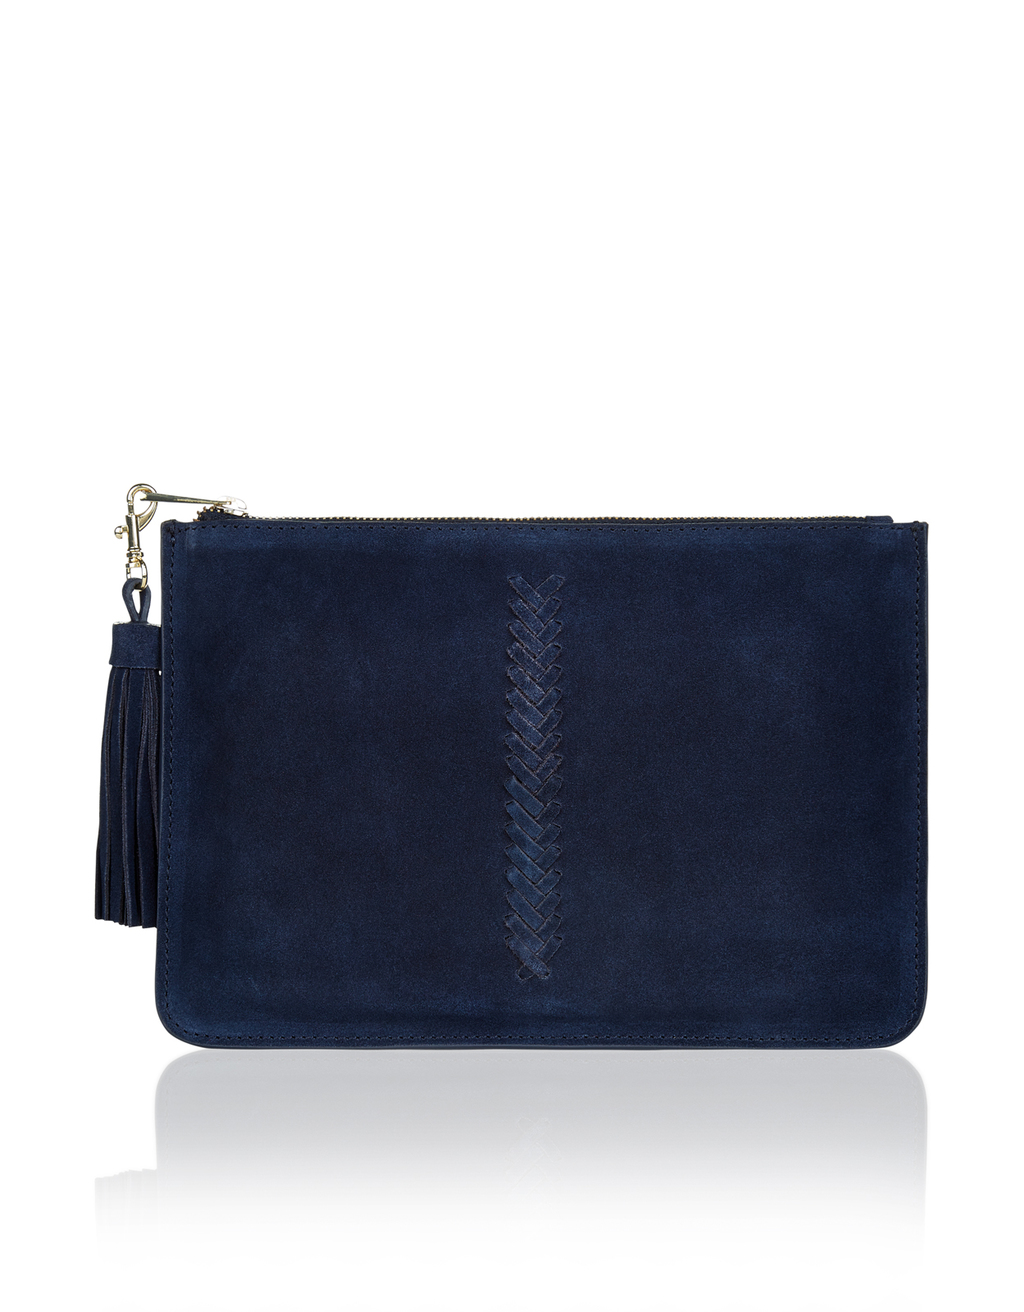 Suede Pouch - predominant colour: navy; occasions: evening, occasion; type of pattern: standard; style: clutch; length: hand carry; size: standard; embellishment: tassels; pattern: plain; finish: plain; material: faux suede; season: a/w 2016; wardrobe: event